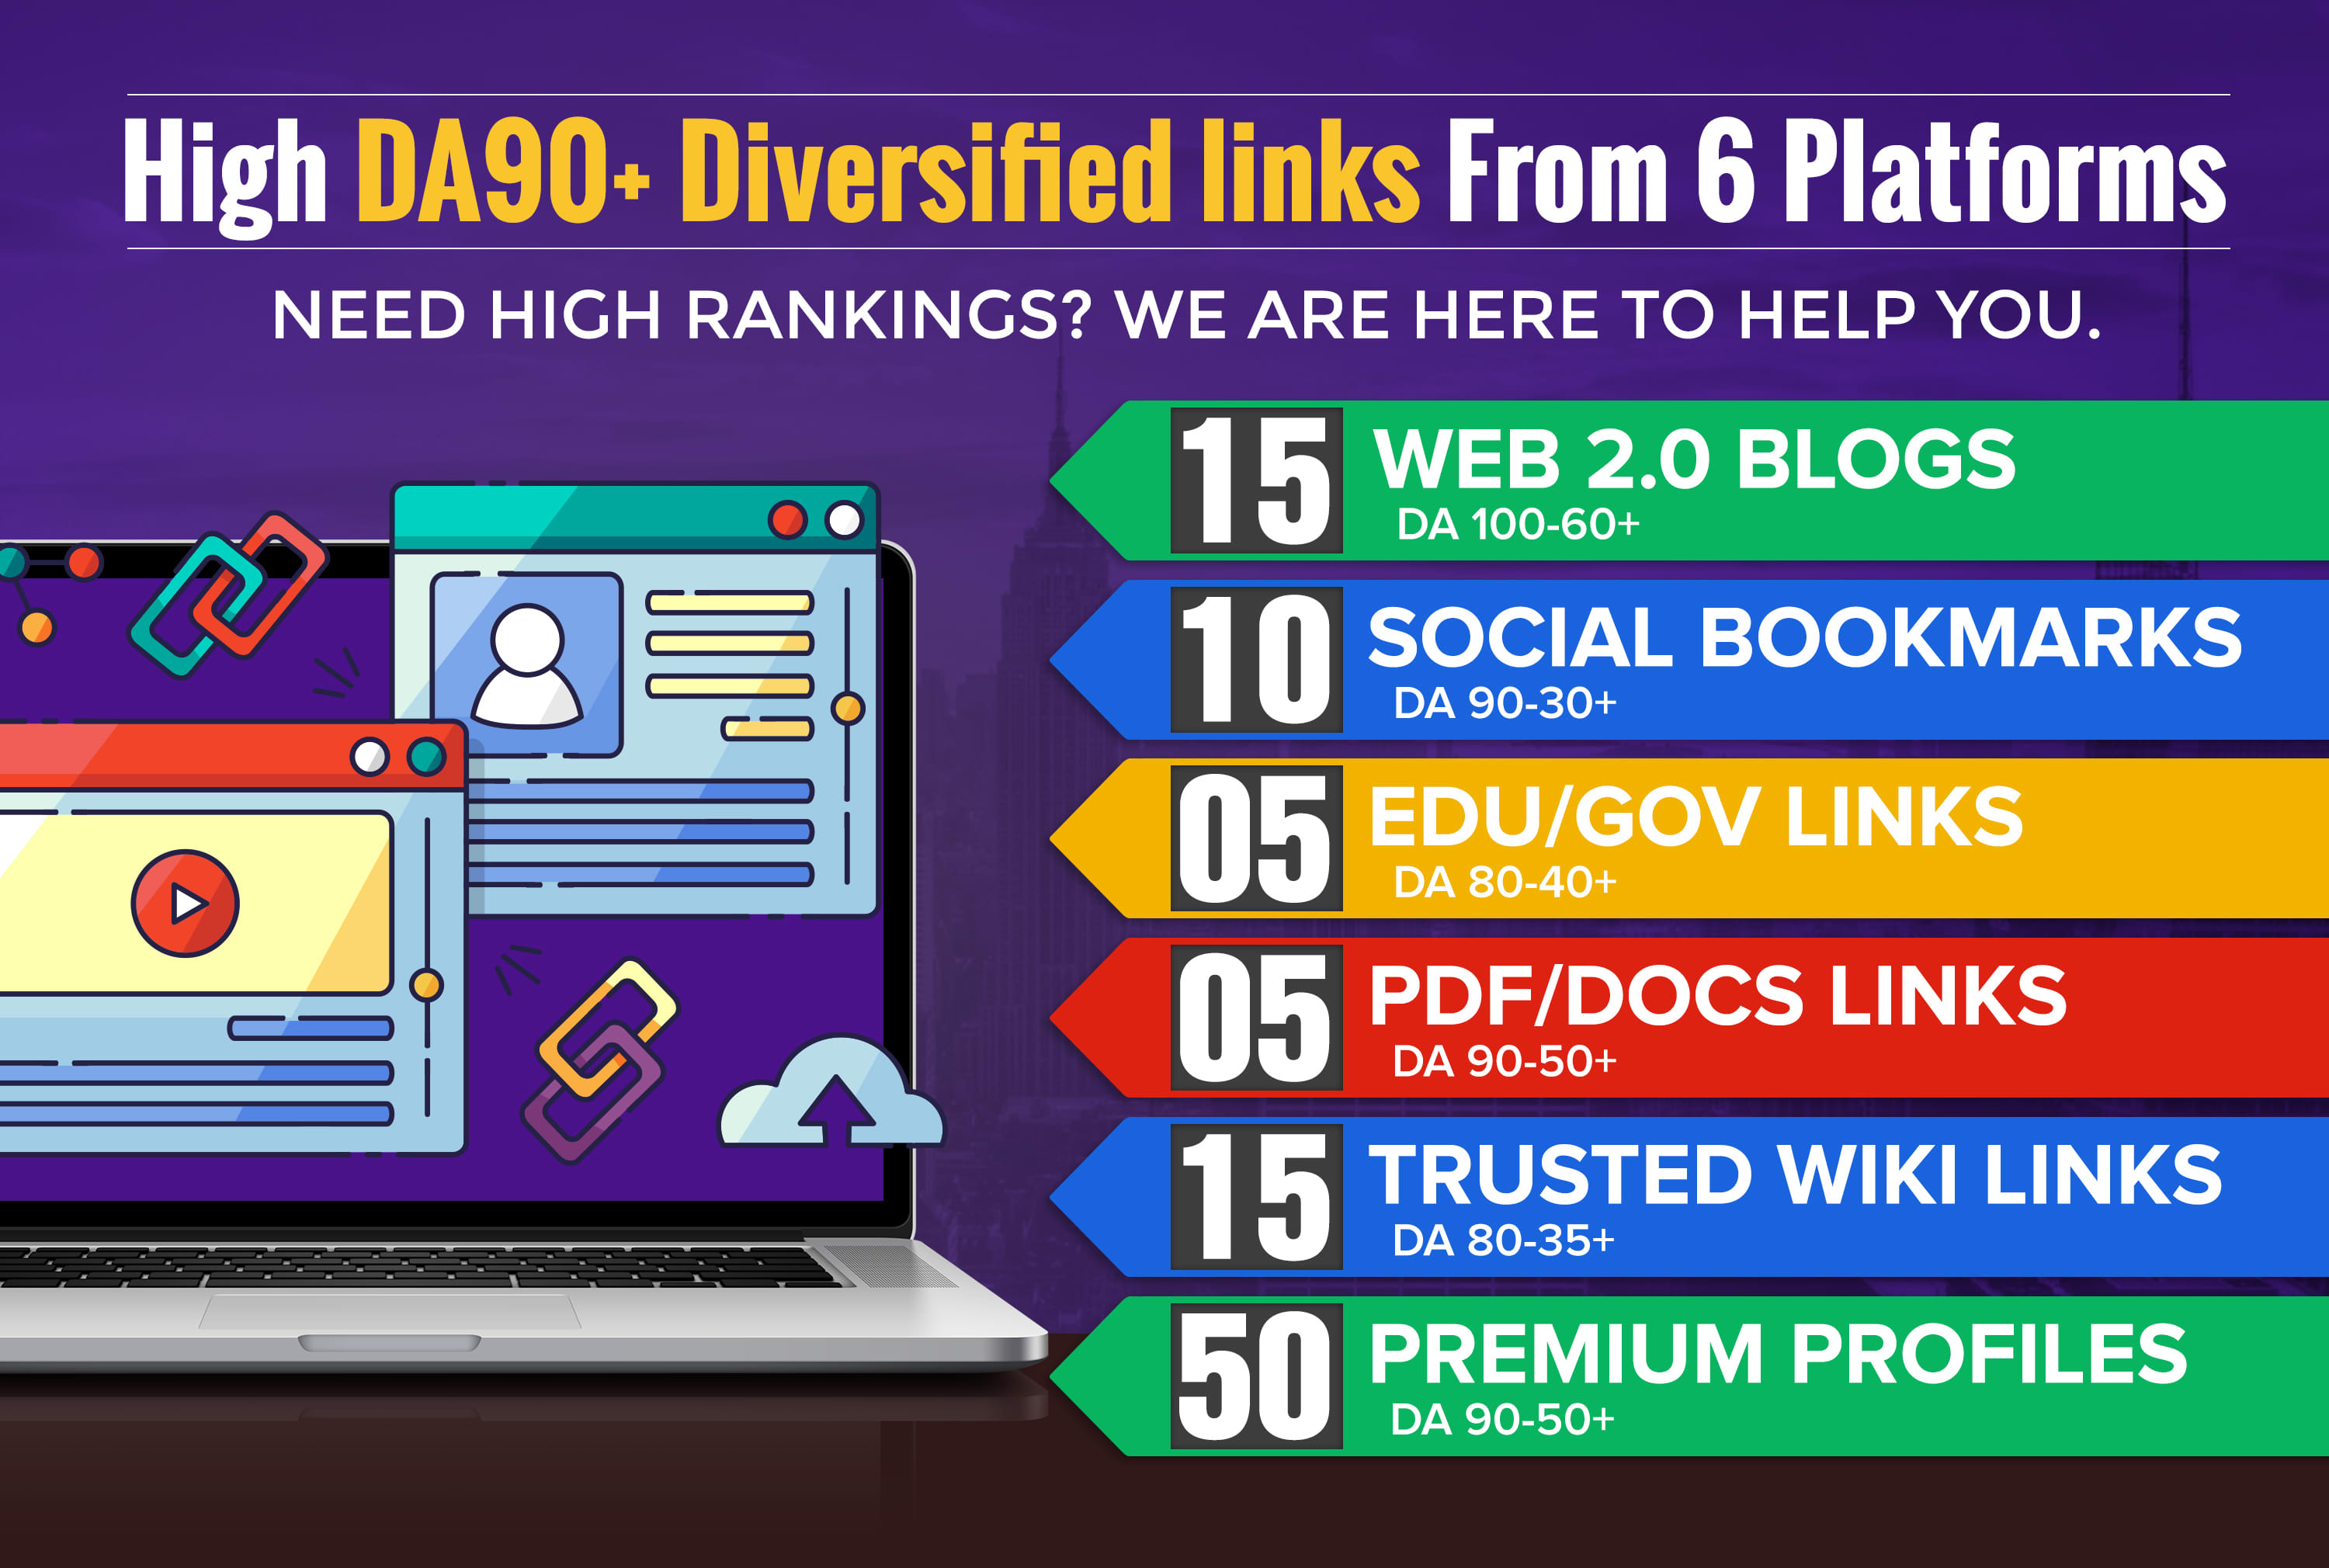 High DA90+ Diversified links From 6 Platforms Need High Rankings